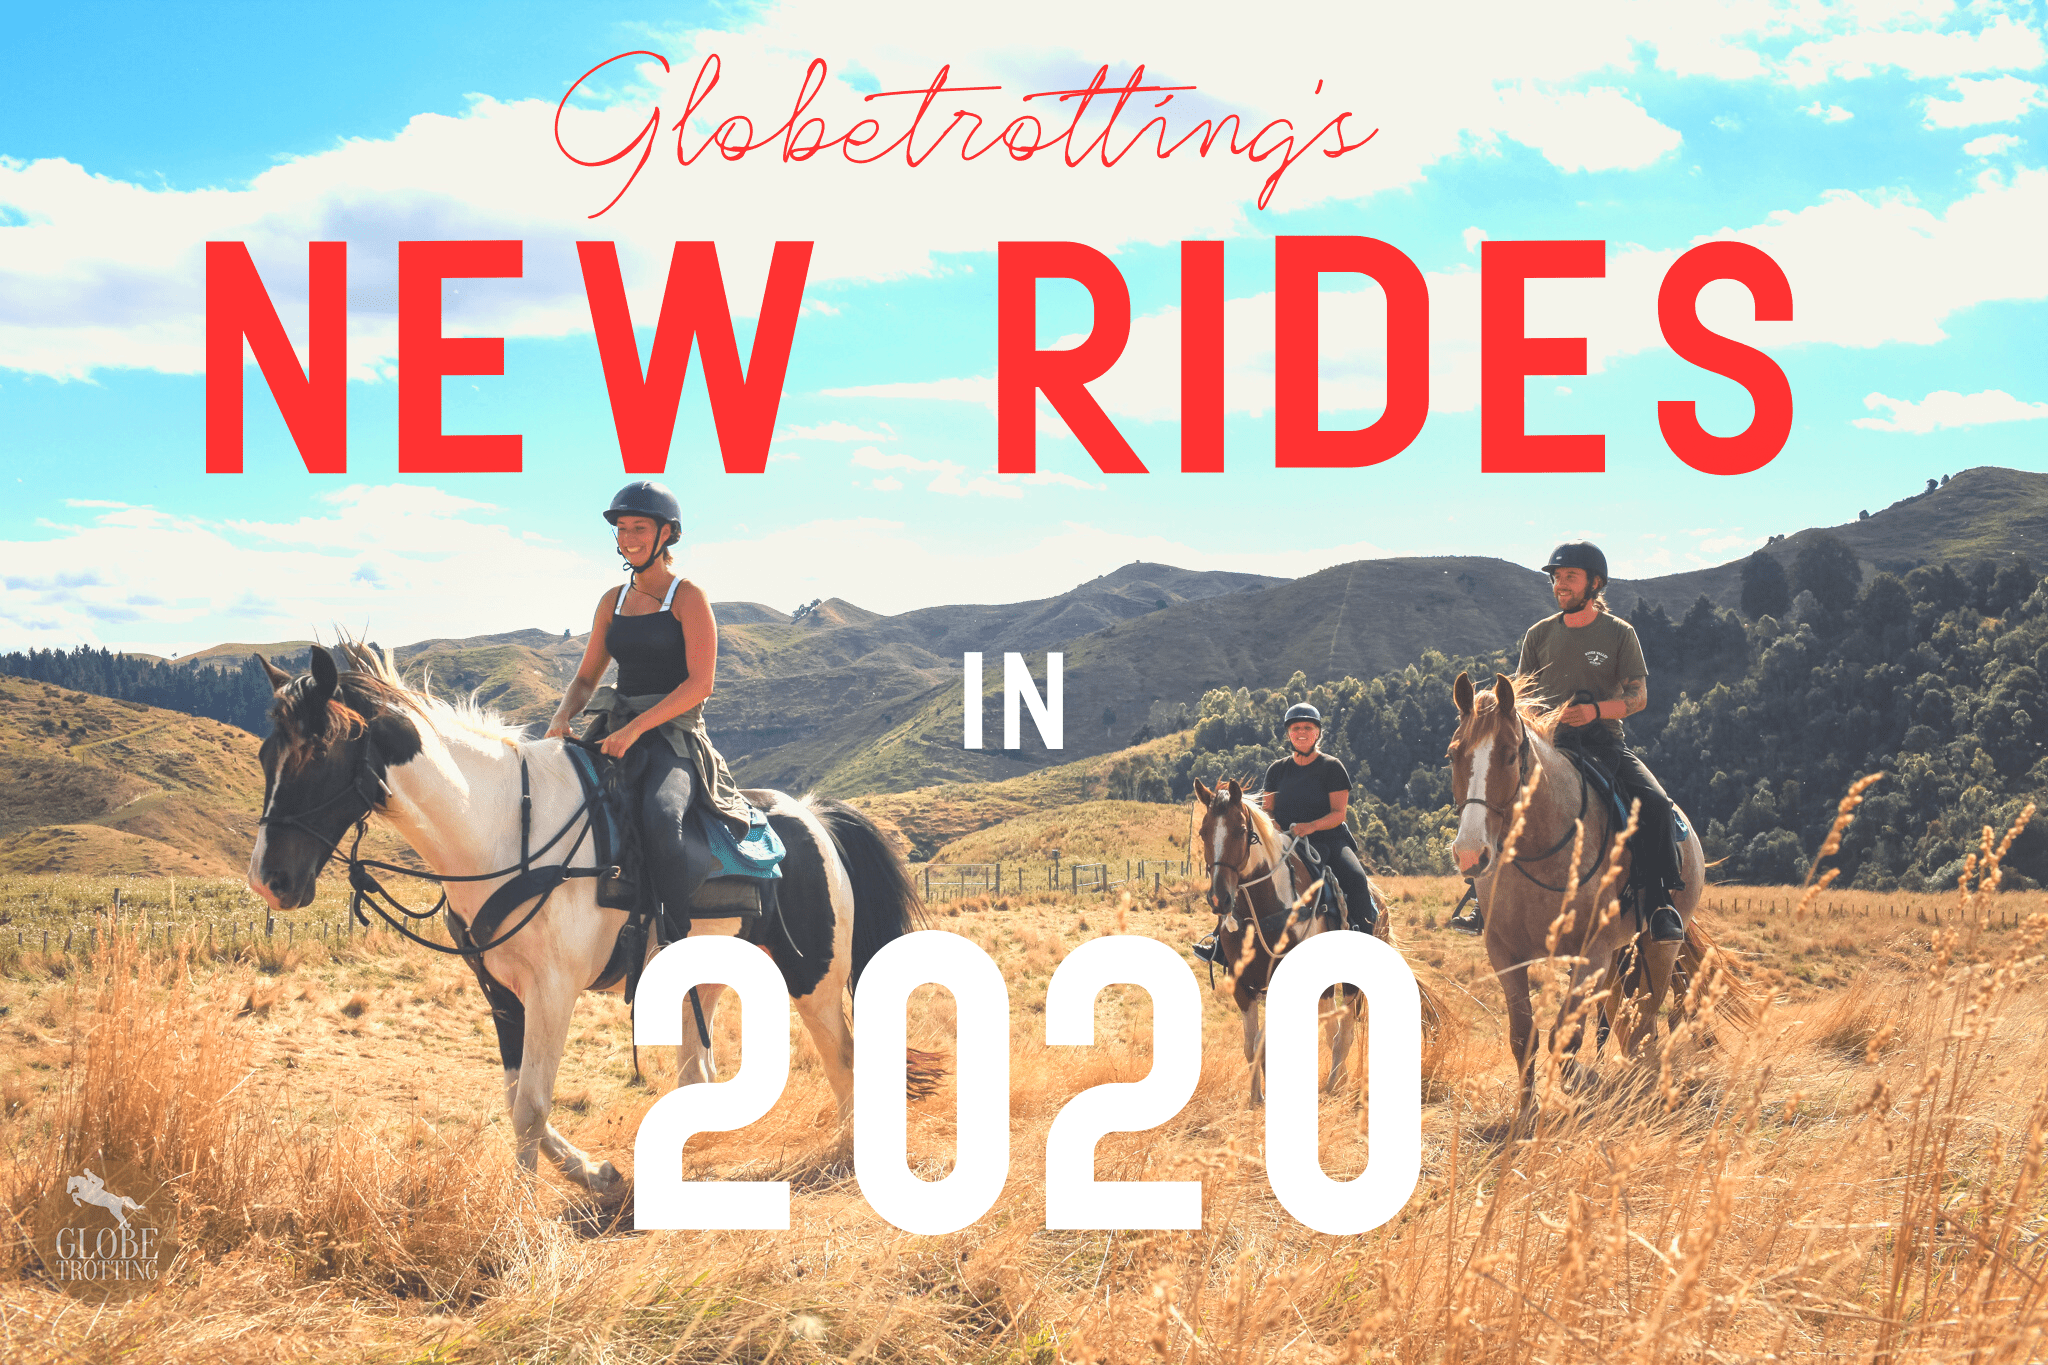 Globetrotting's new rides in 2020